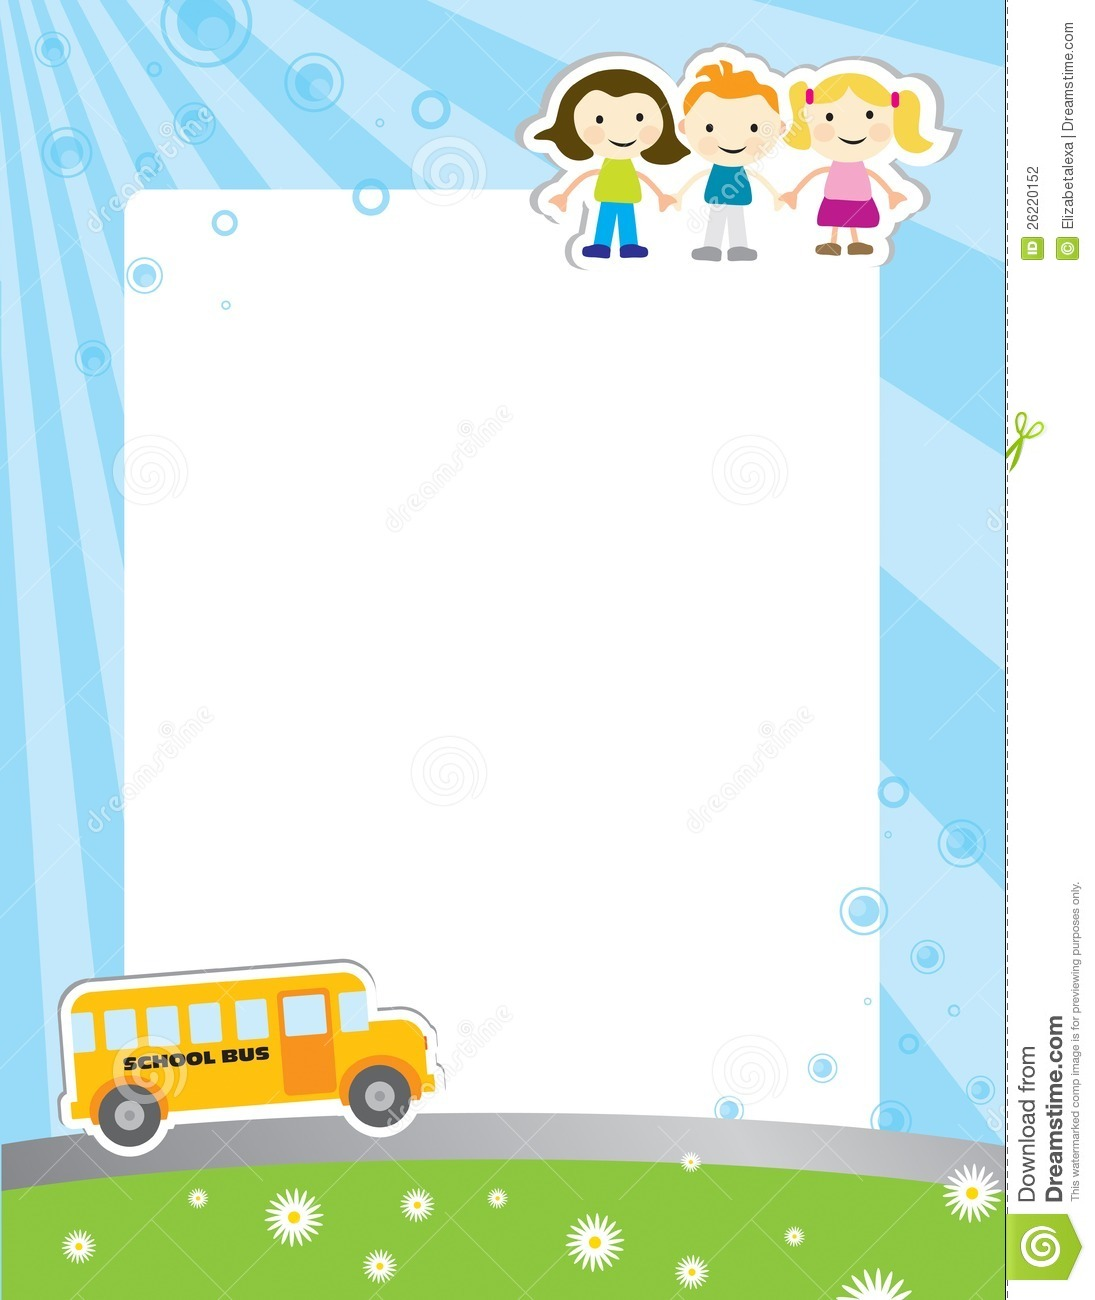 template background for school poster stock vector illustration of